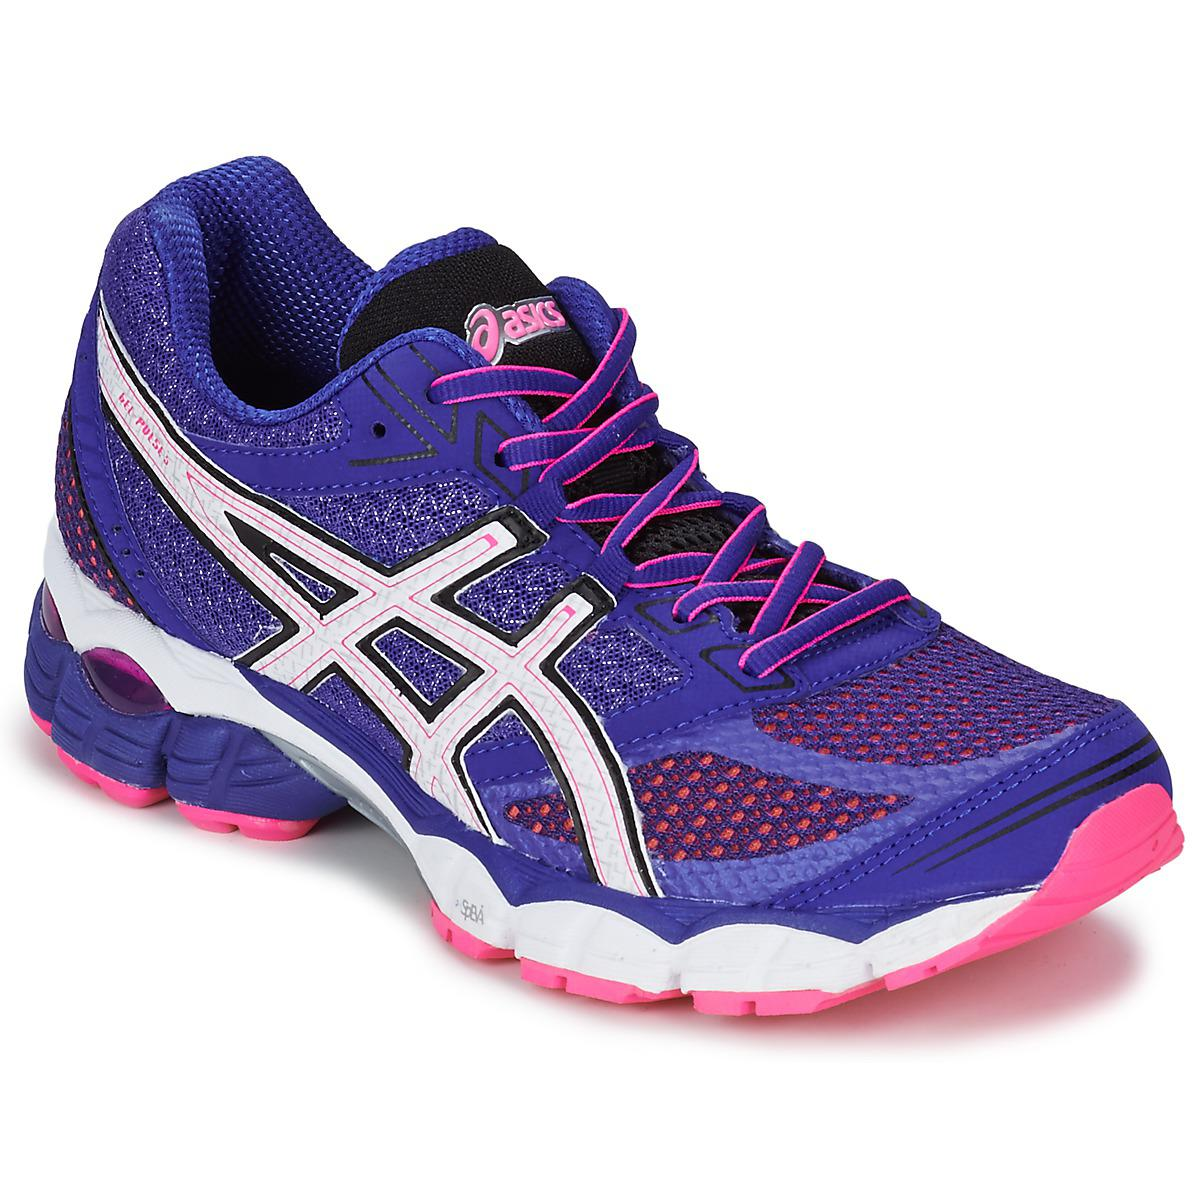 e16a857ee93d Asics Patriot 7 Trainers Womens Sports footwear Womens Trainers COLOUR -white pink blue